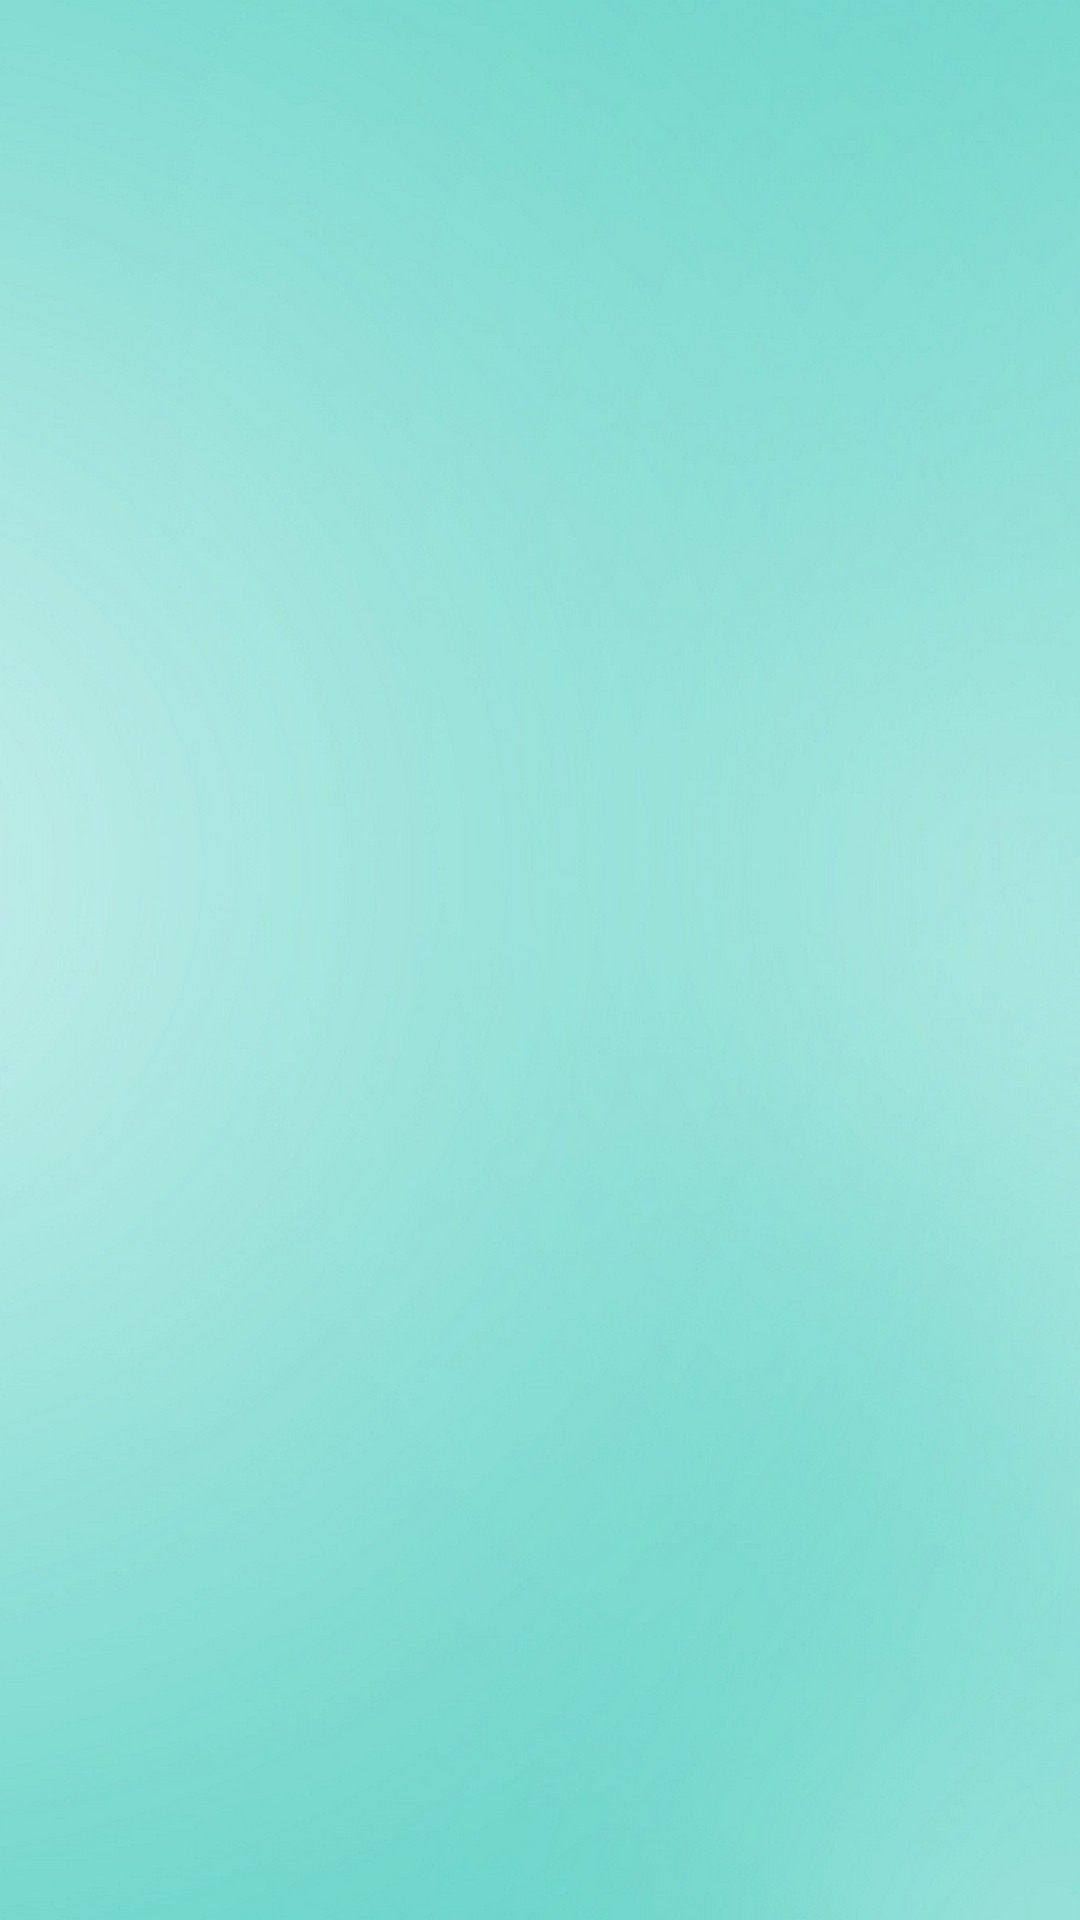 Mint Green Wallpapers (61+ images)